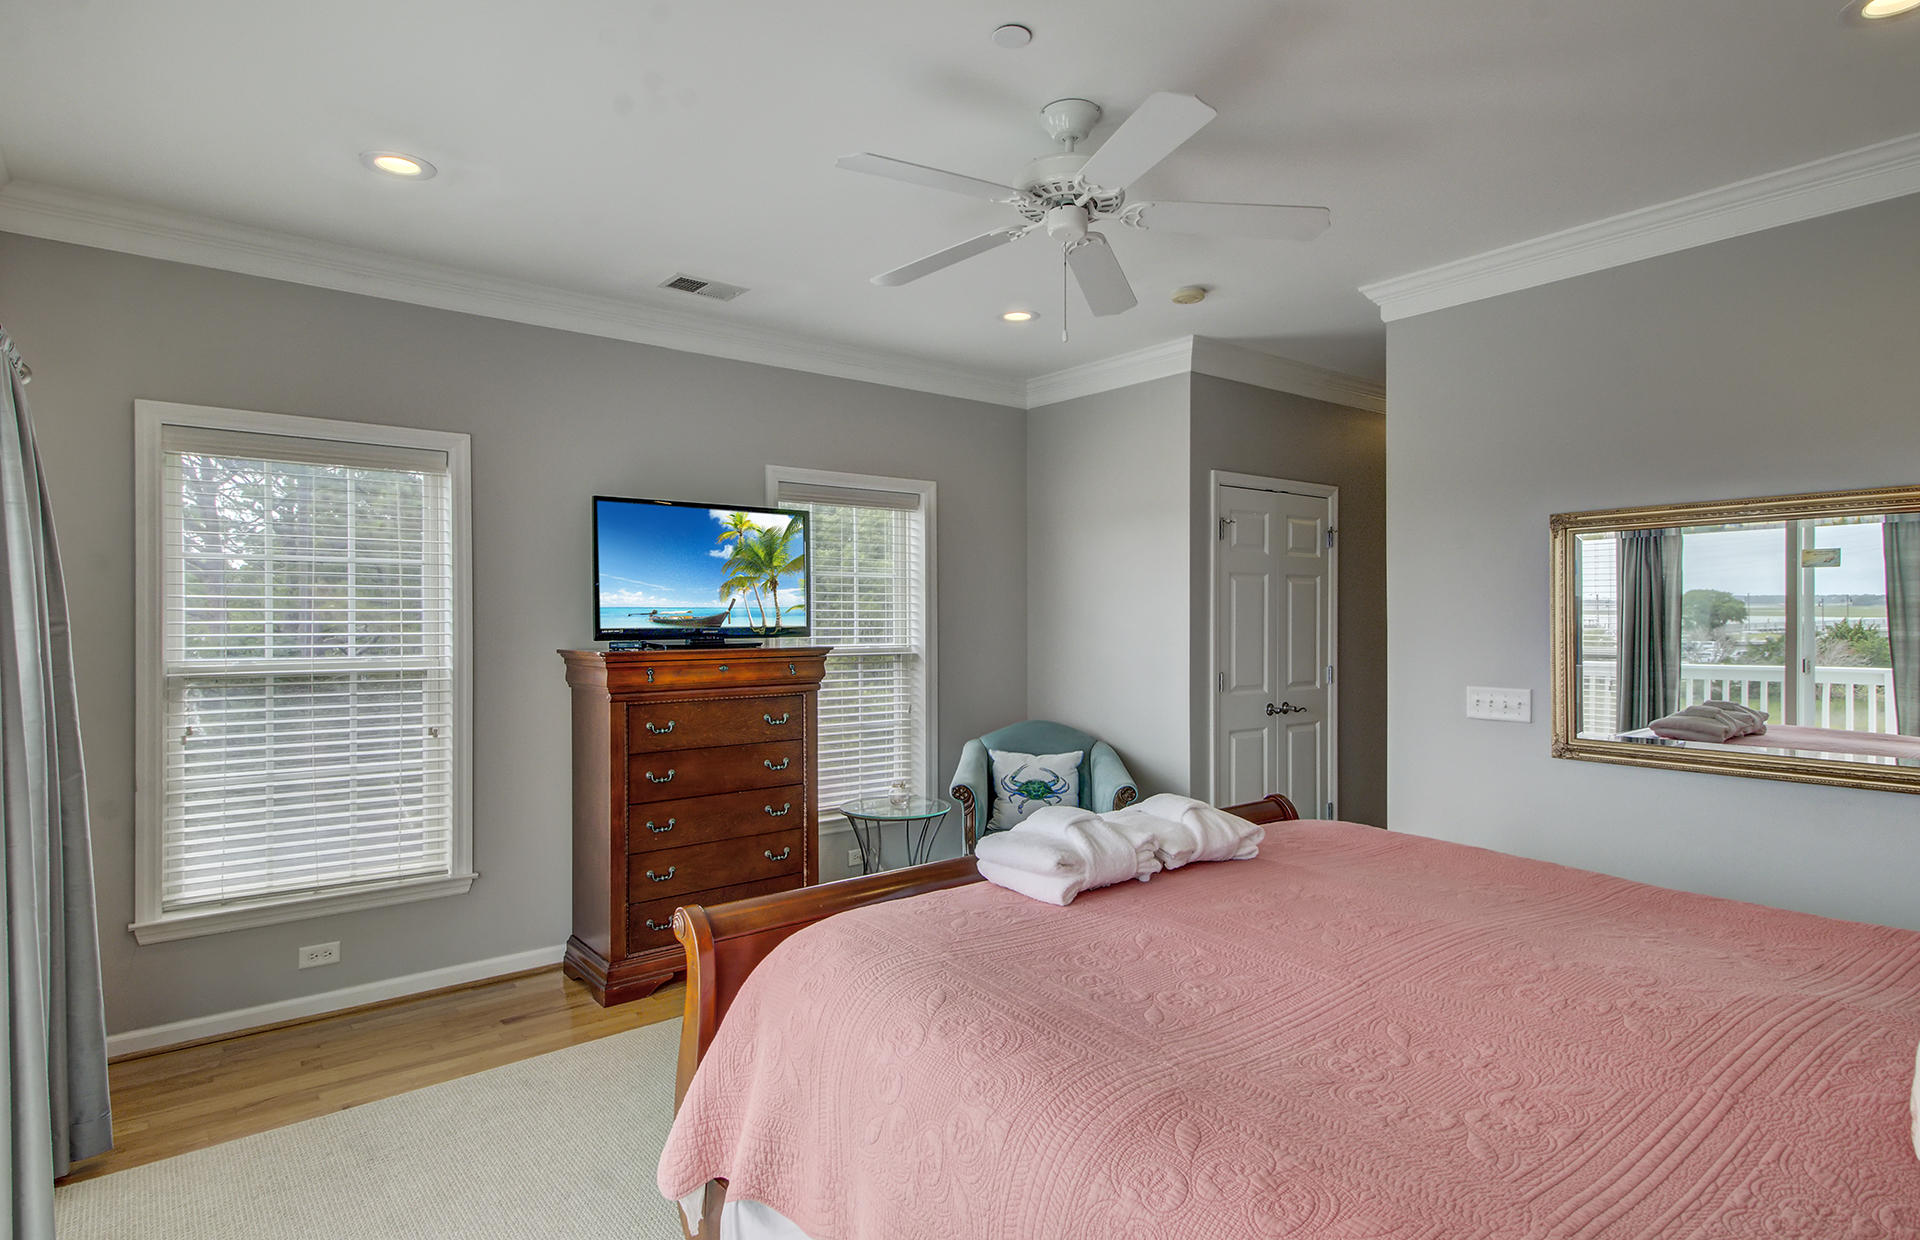 Waters Edge Homes For Sale - 80 2nd, Folly Beach, SC - 53